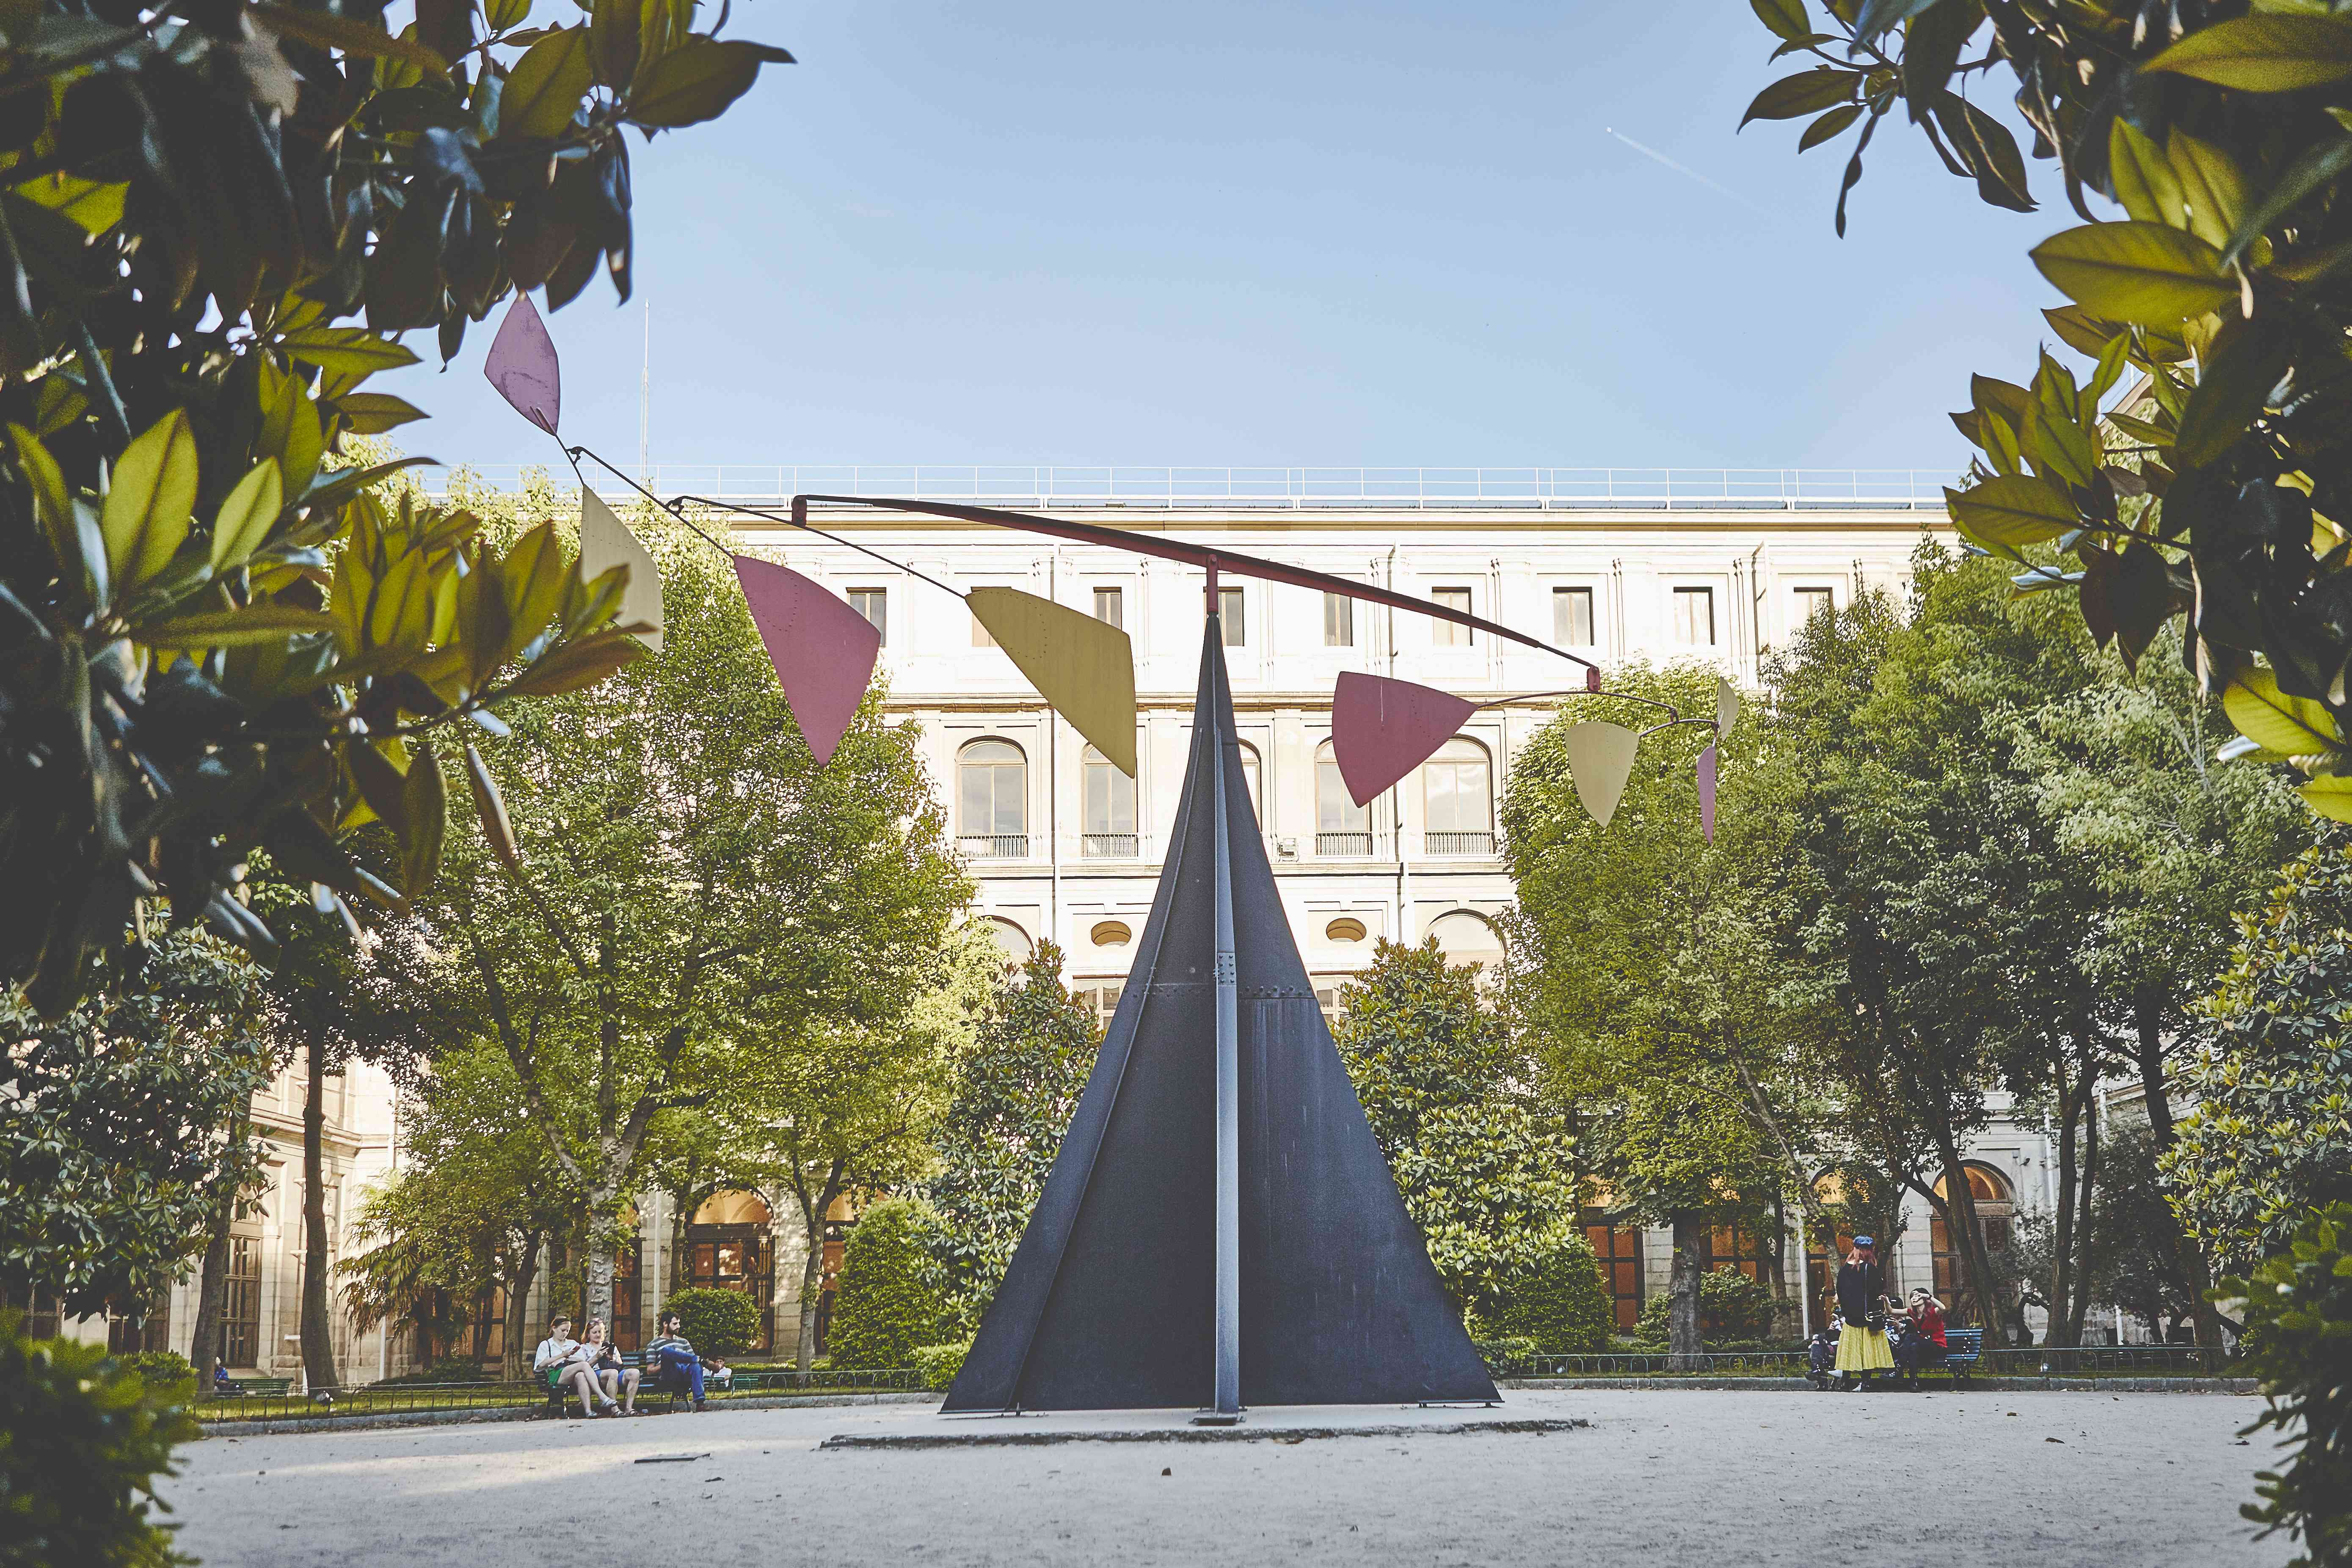 A large sculpture in the garden at Reina Sofia